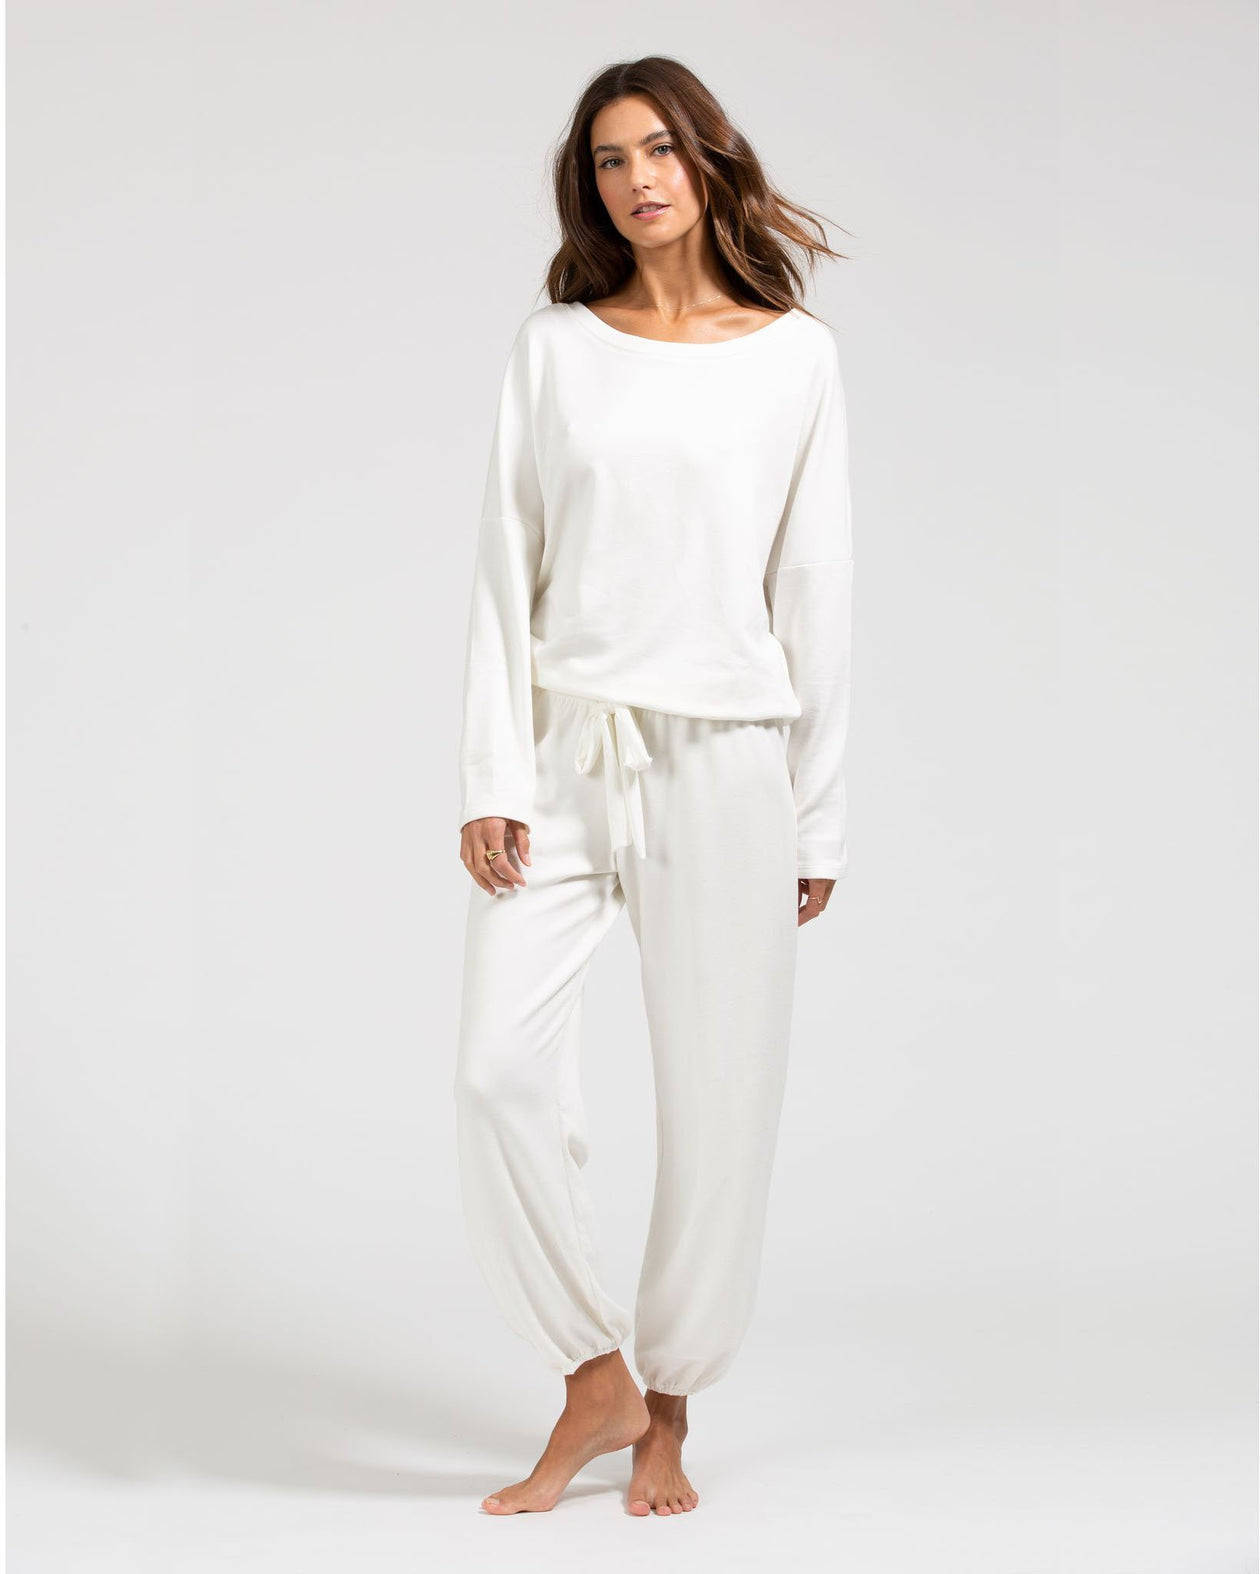 Winter Heather Slouchy Top - Winter White | Eberjey - Women's Sleepwear